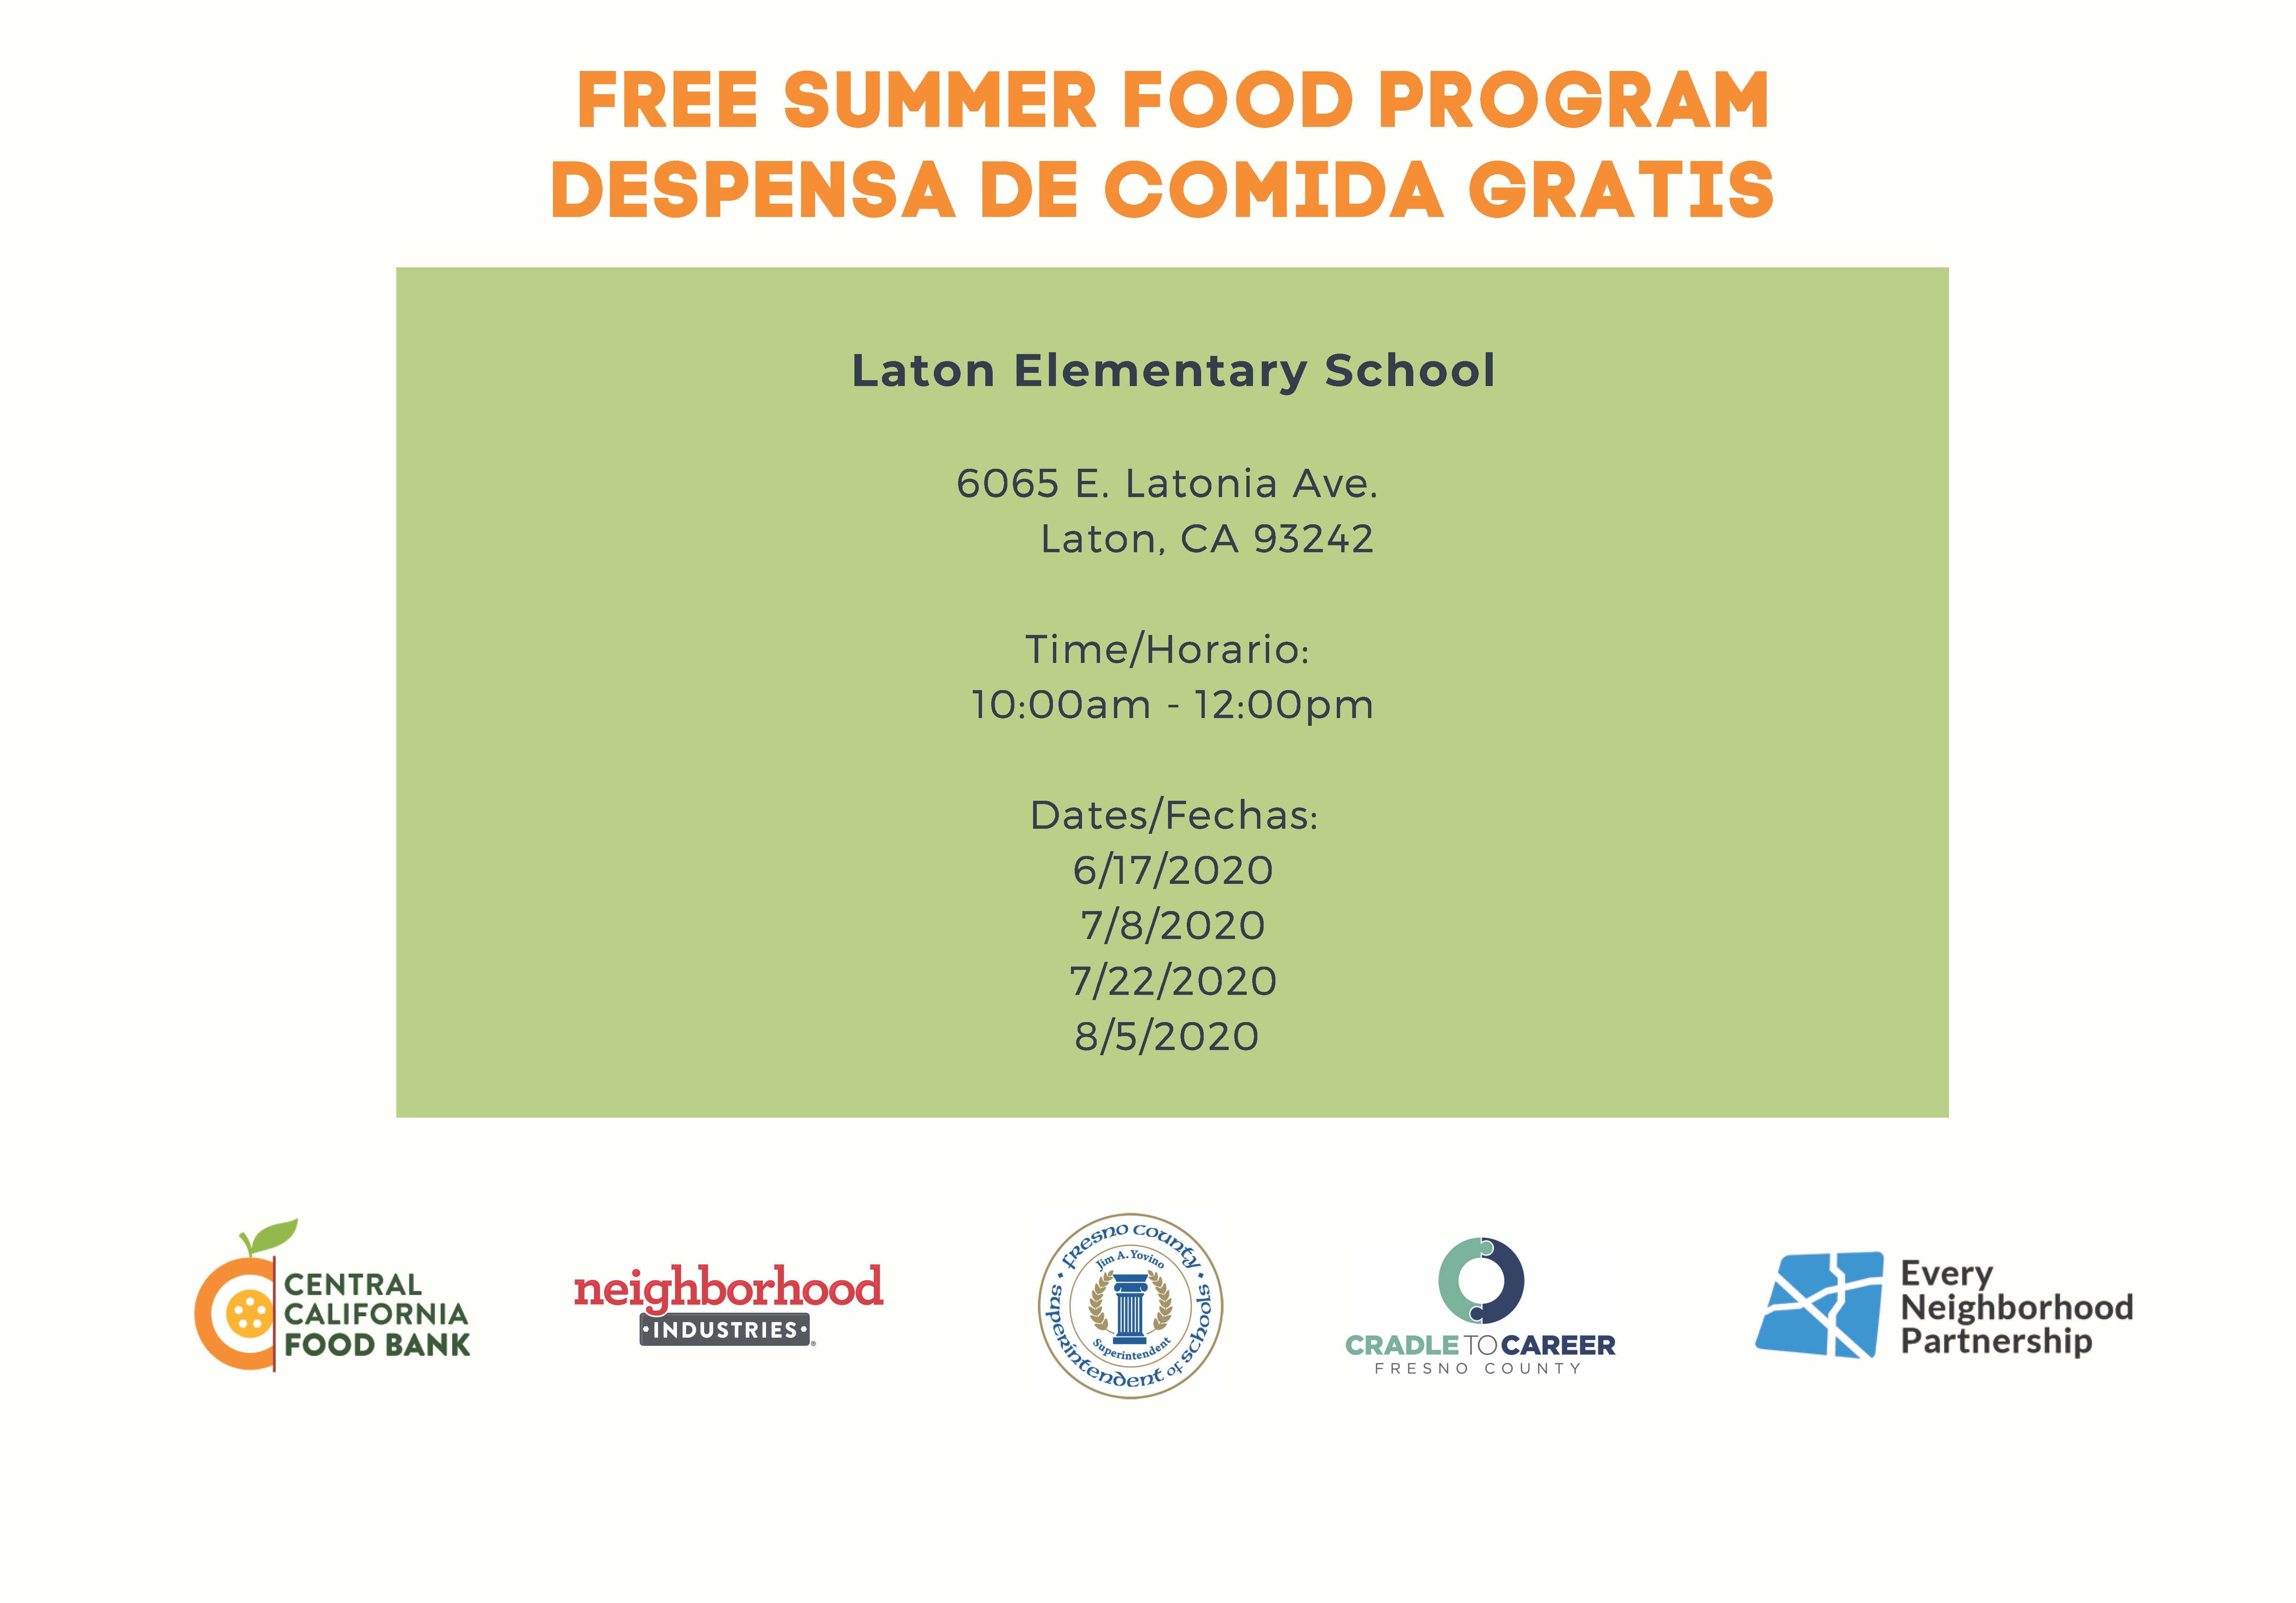 Free Summer Food Program